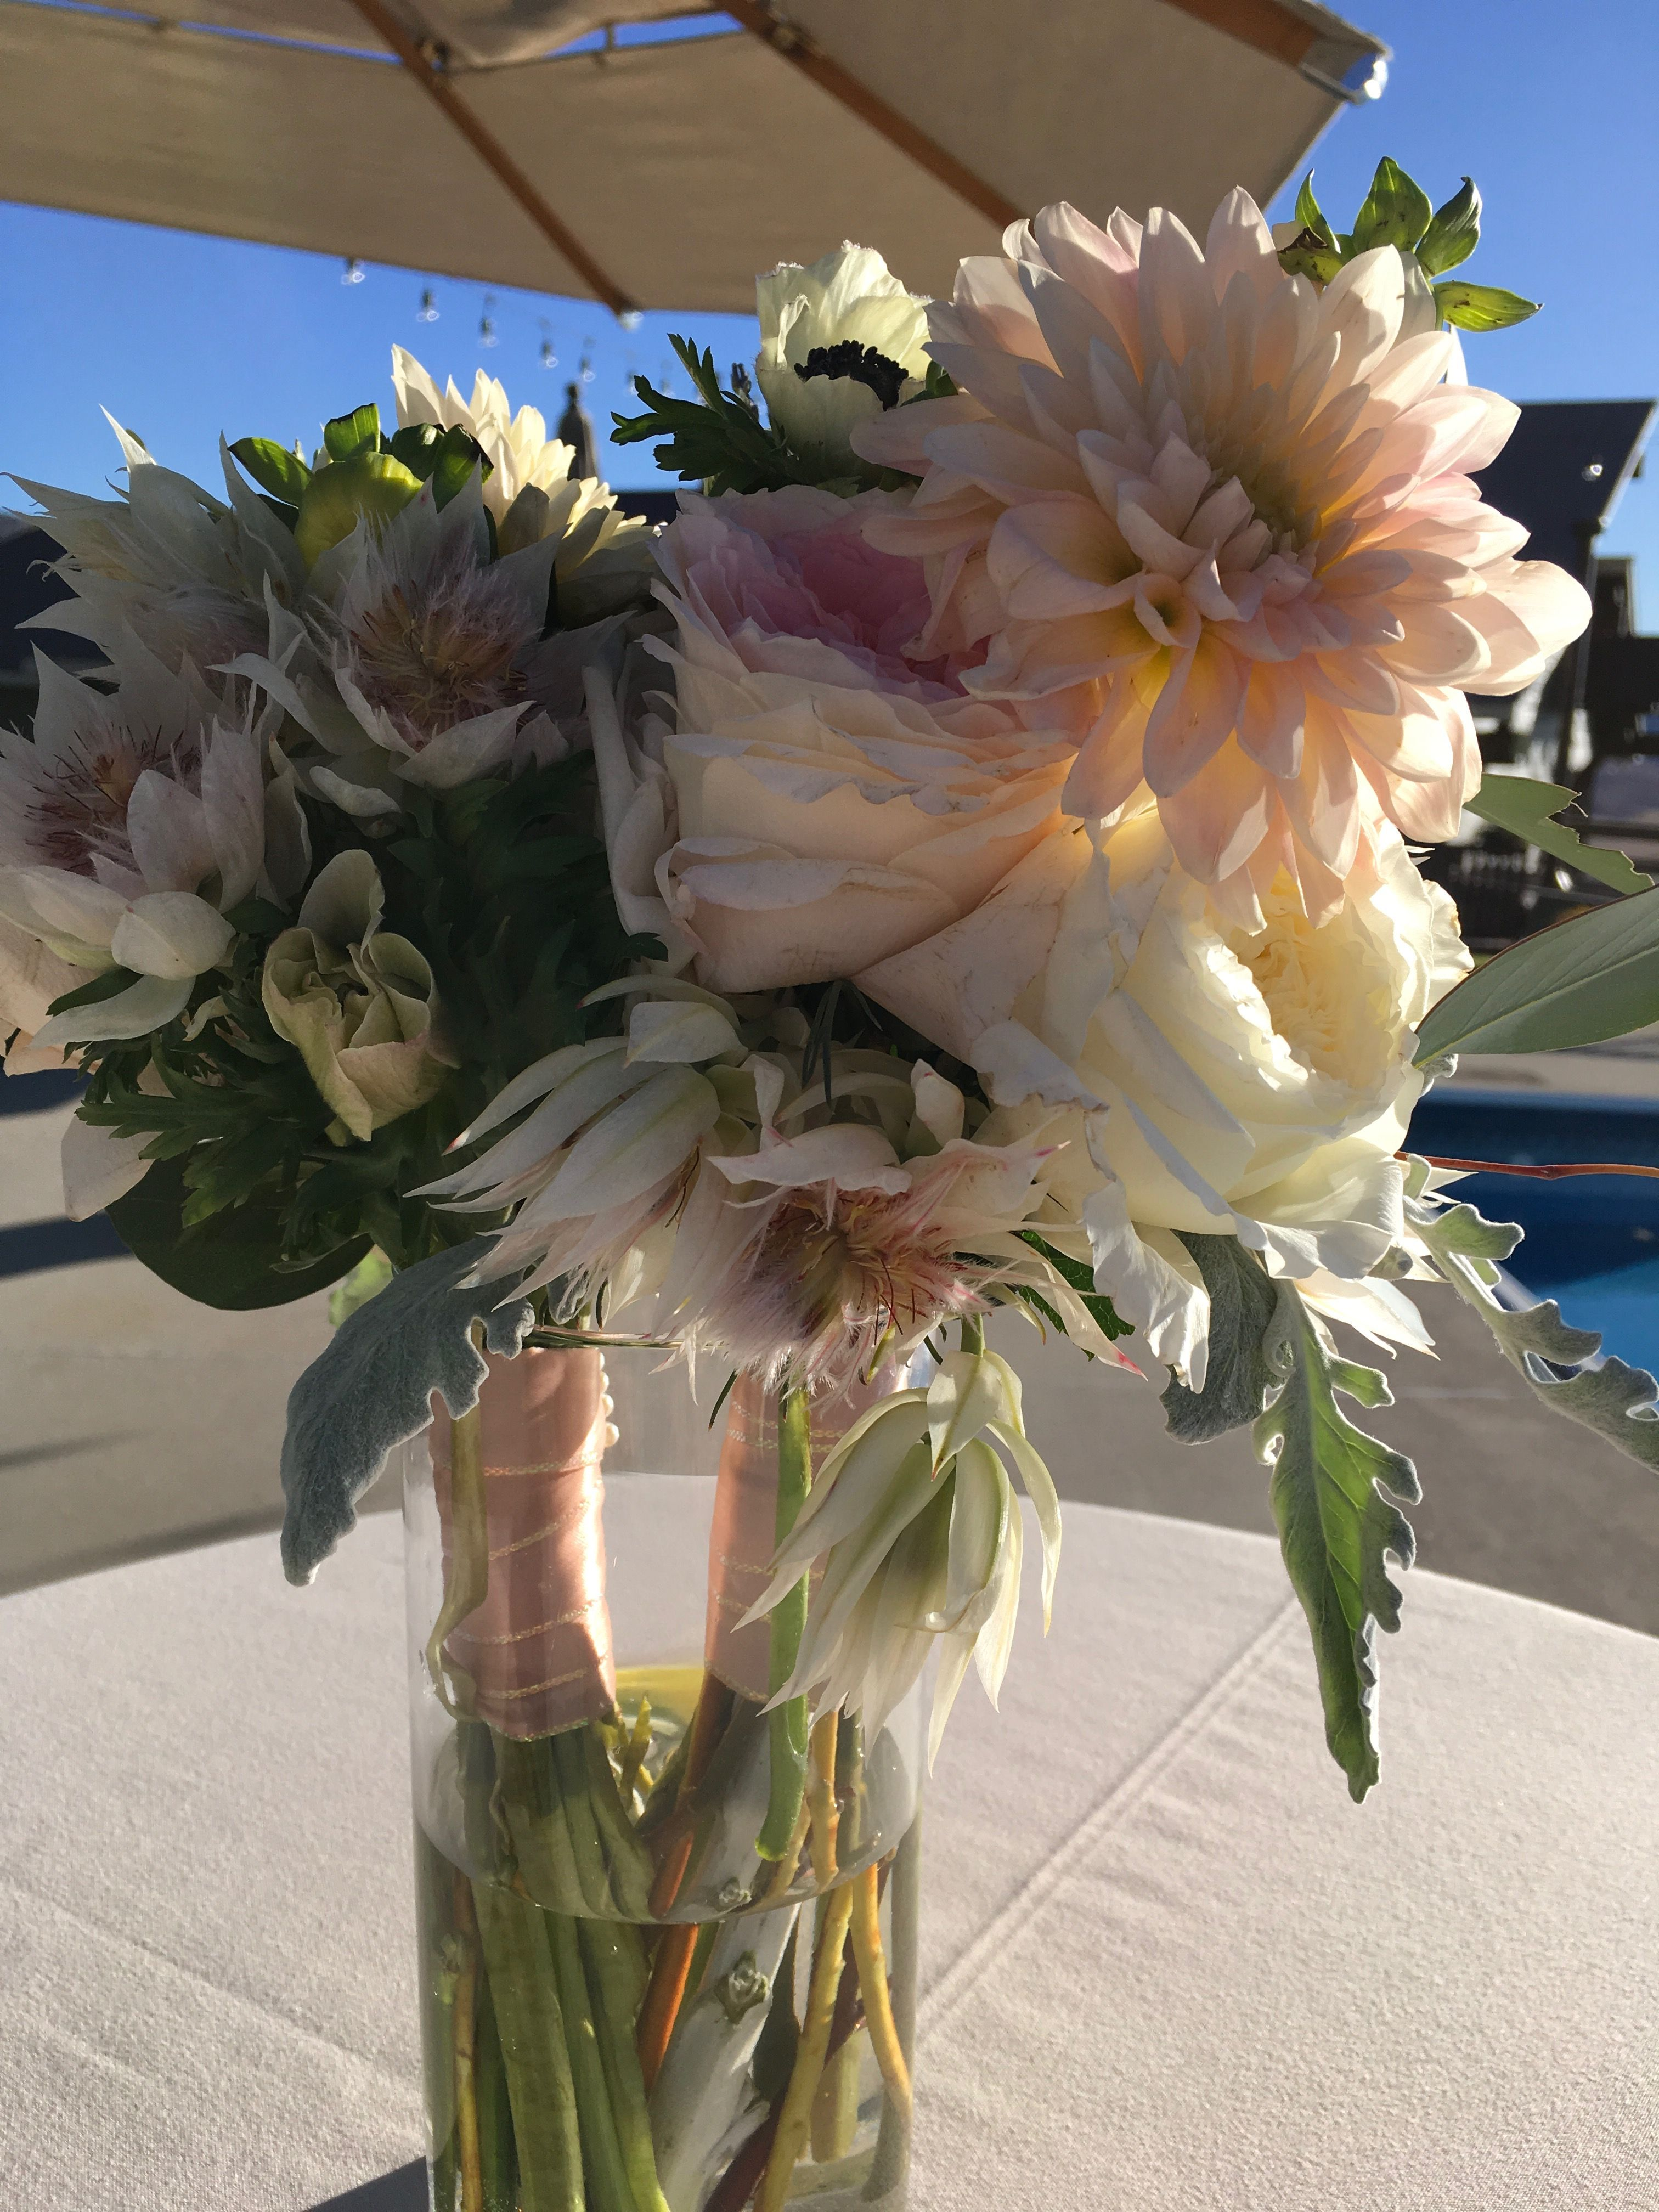 Soulspark Events A Wedding Event Planning Company In Steamboat Springs Colorado Brings Dreams To Life Let Us Plan Your Next Unforgettable Moment